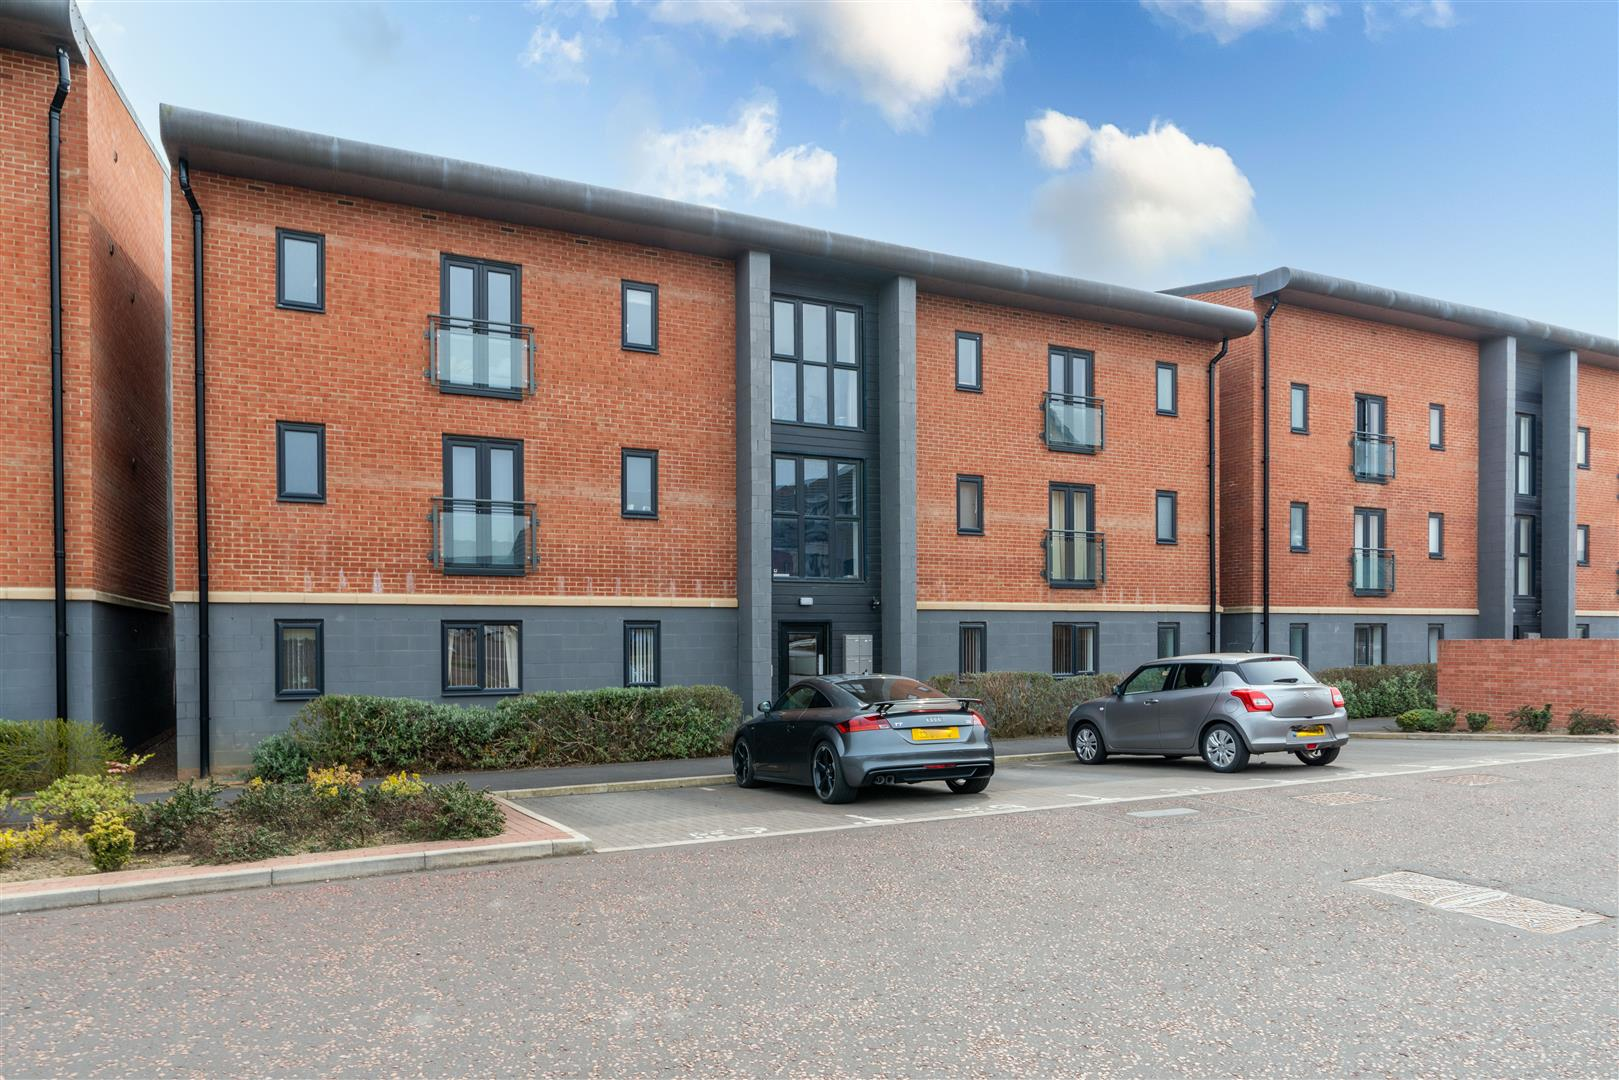 2 bed apartment for sale in Newcastle Upon Tyne, NE13 9BP, NE13